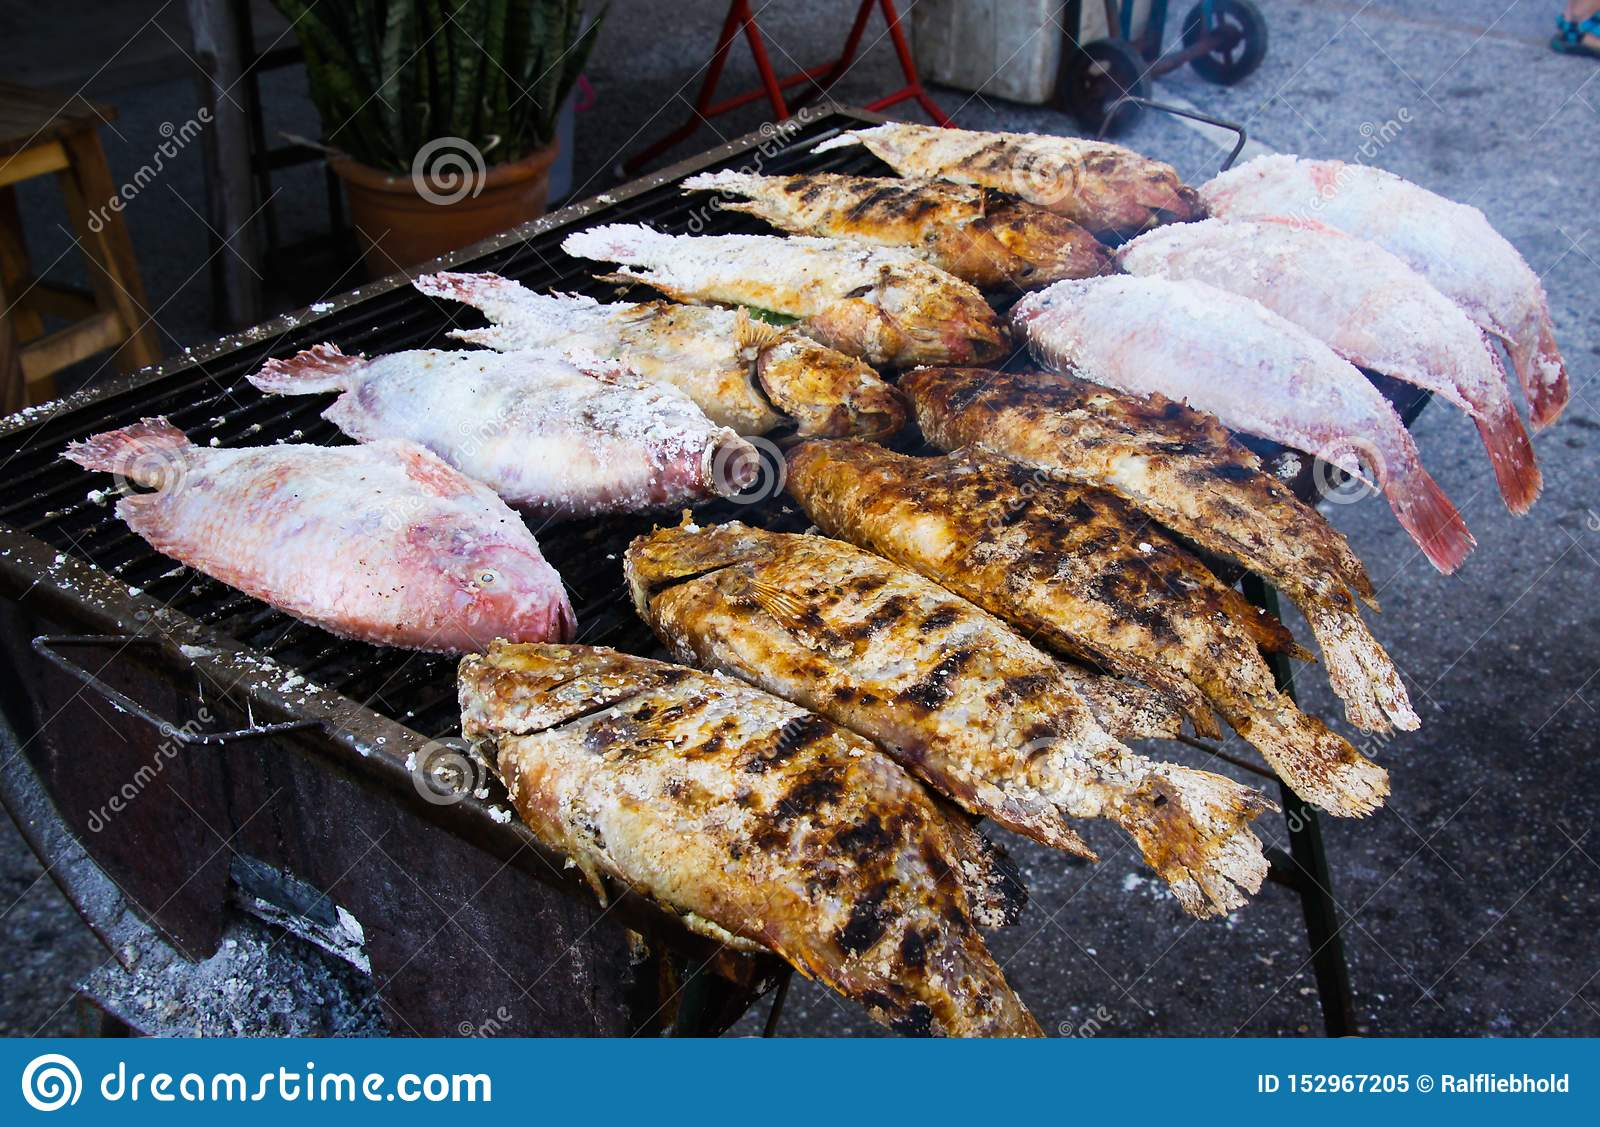 Close up of thai street food barbecue with salted fishes on charcoal grill - Bangkok, Thailand